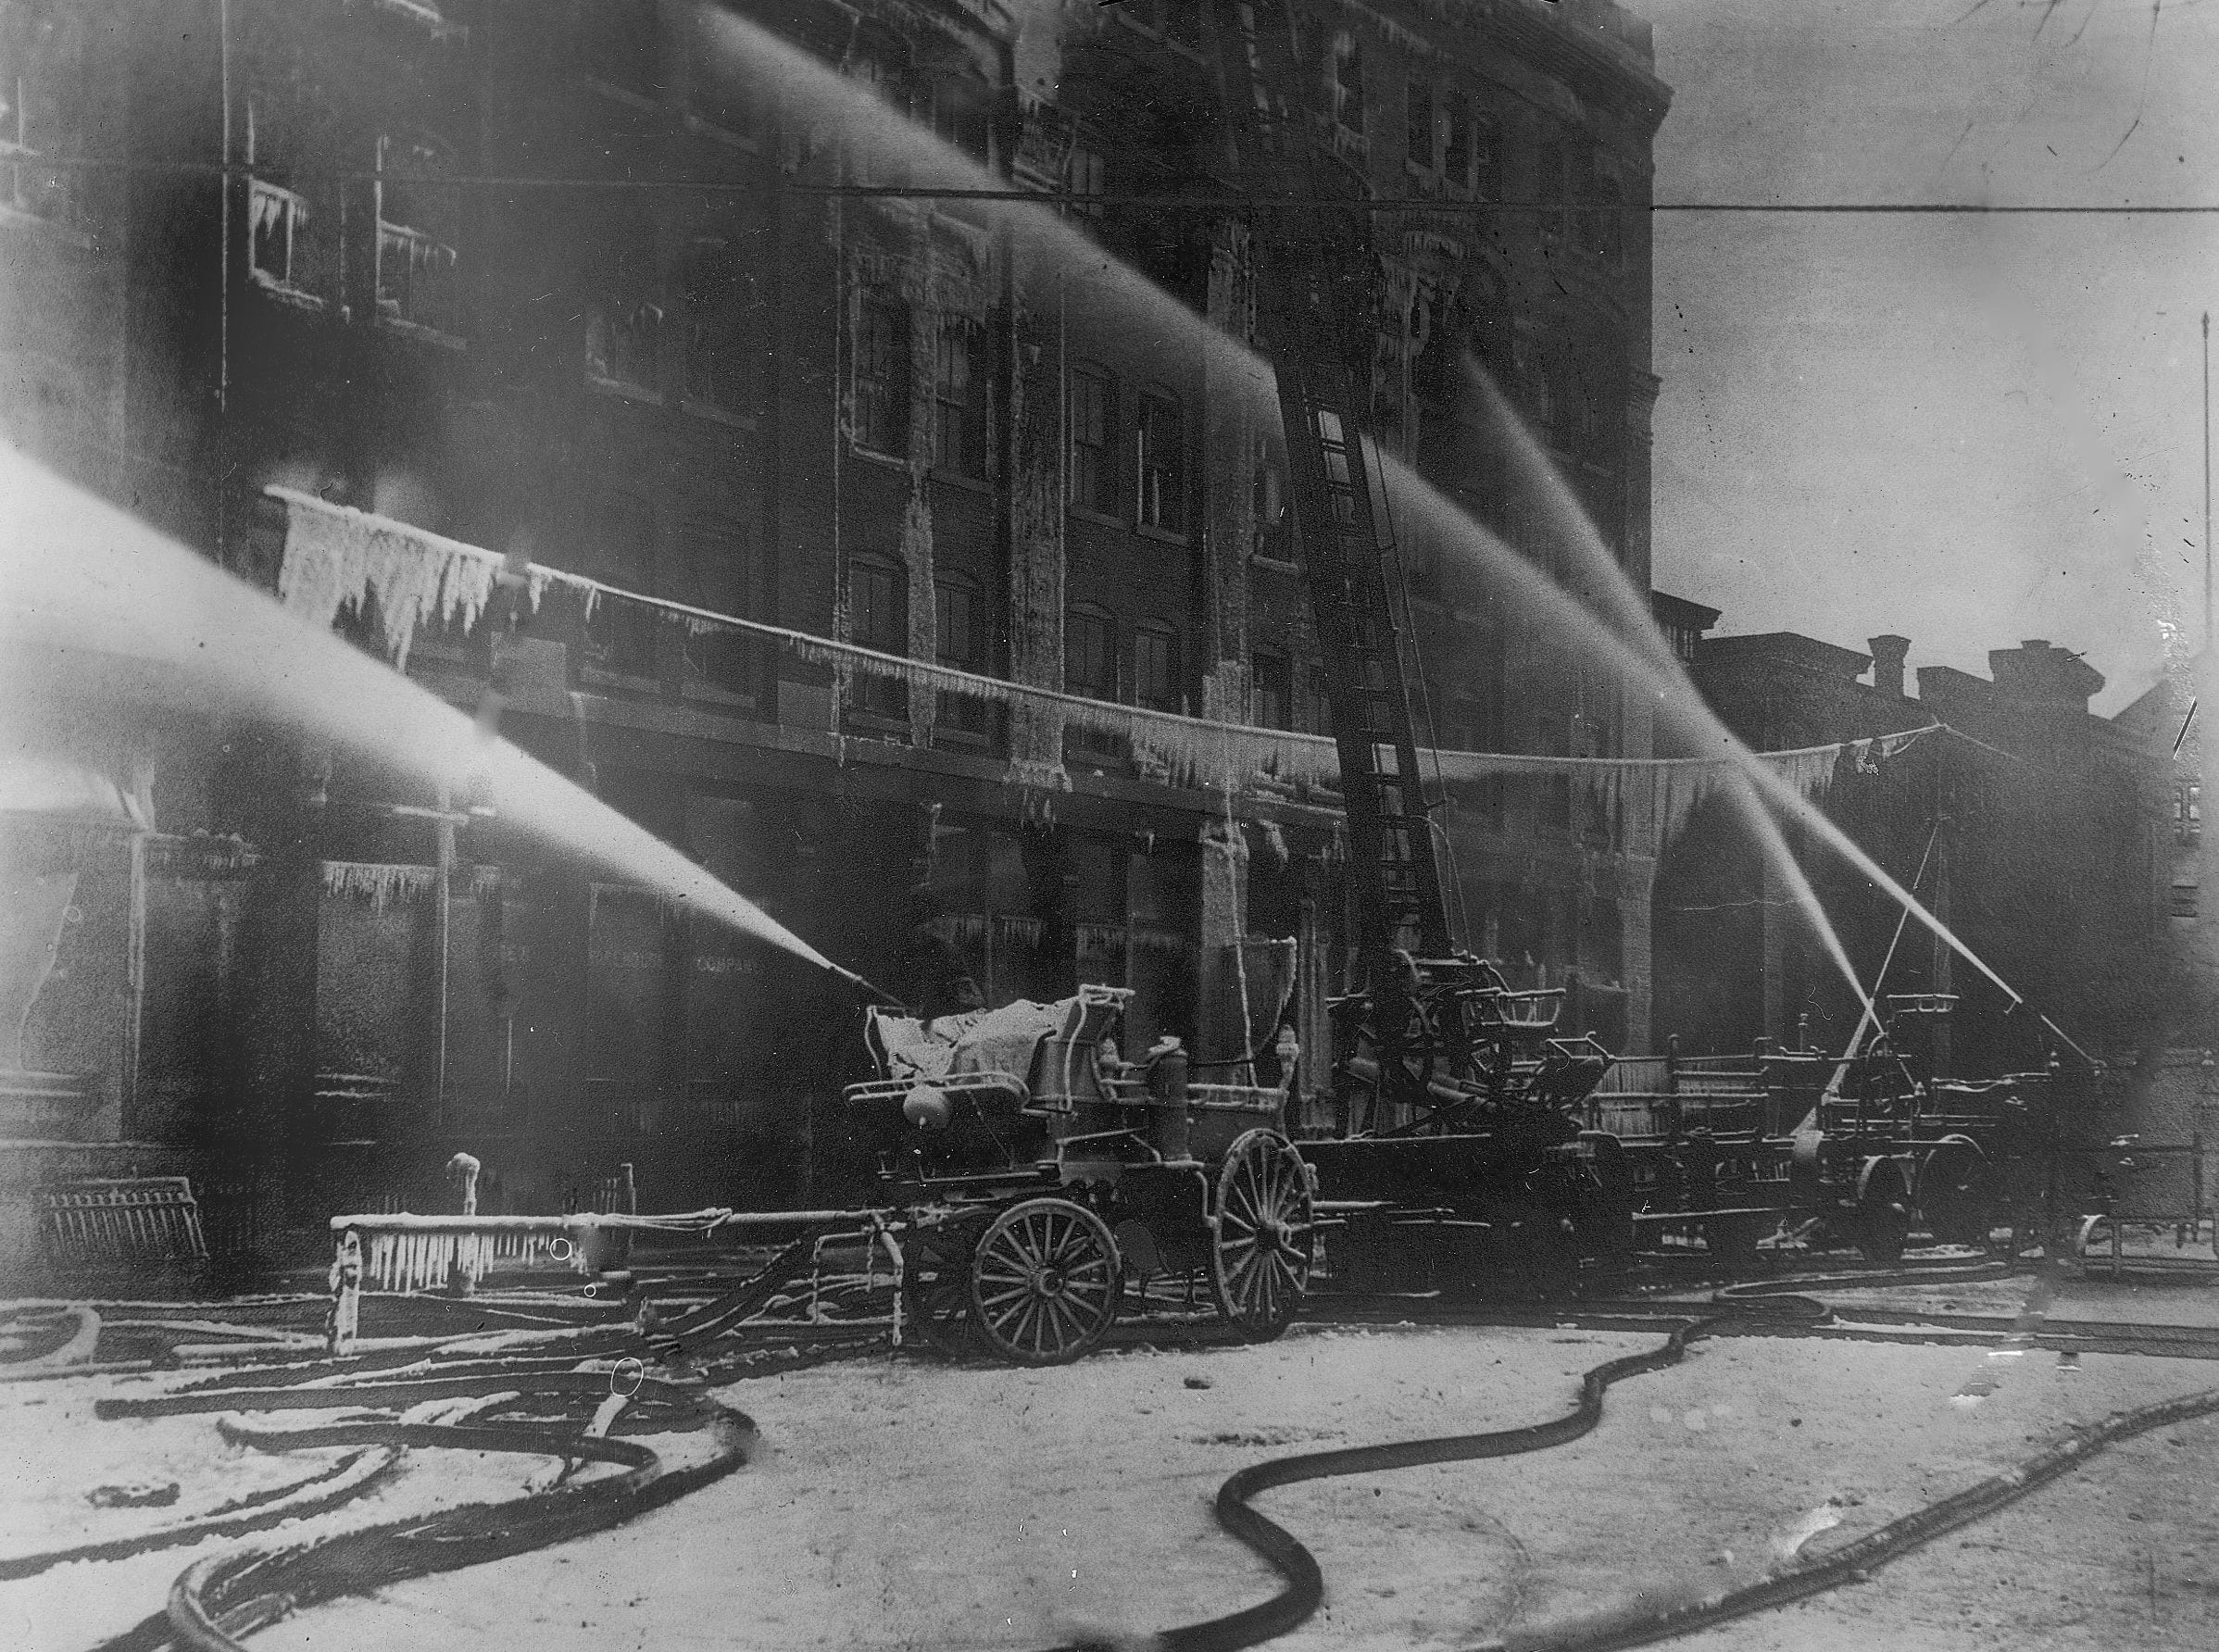 Coburn Store and Warehouse Fire, January 28th, 1908.